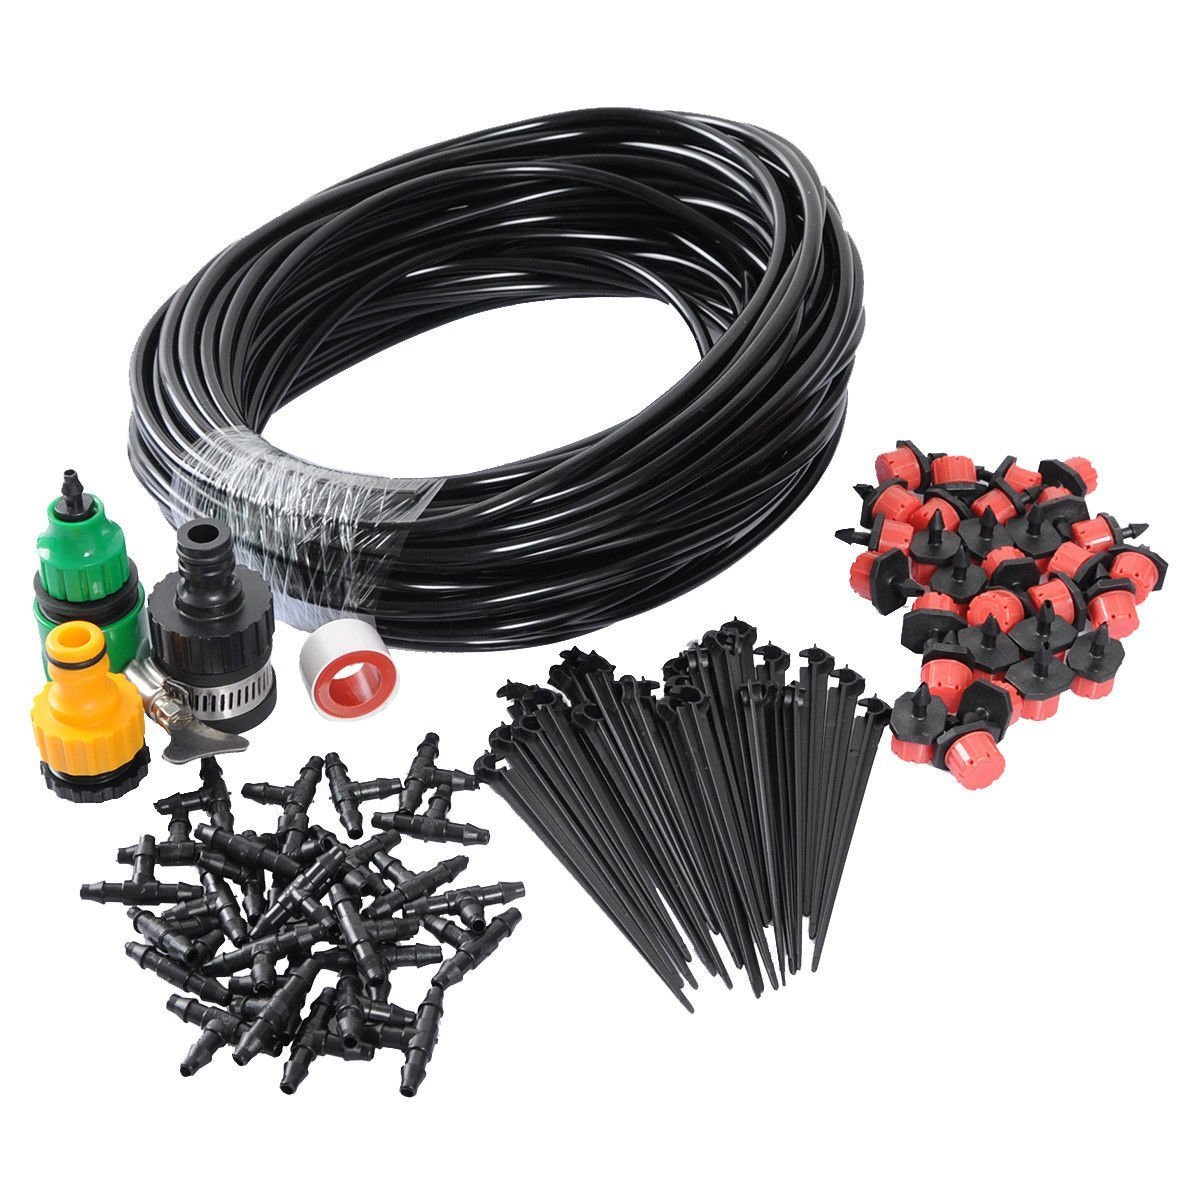 82FT Micro Flow Drip Watering Irrigation Kits DIY Plant Self Watering Garden Hose Irrigation System Kit theBlueStone